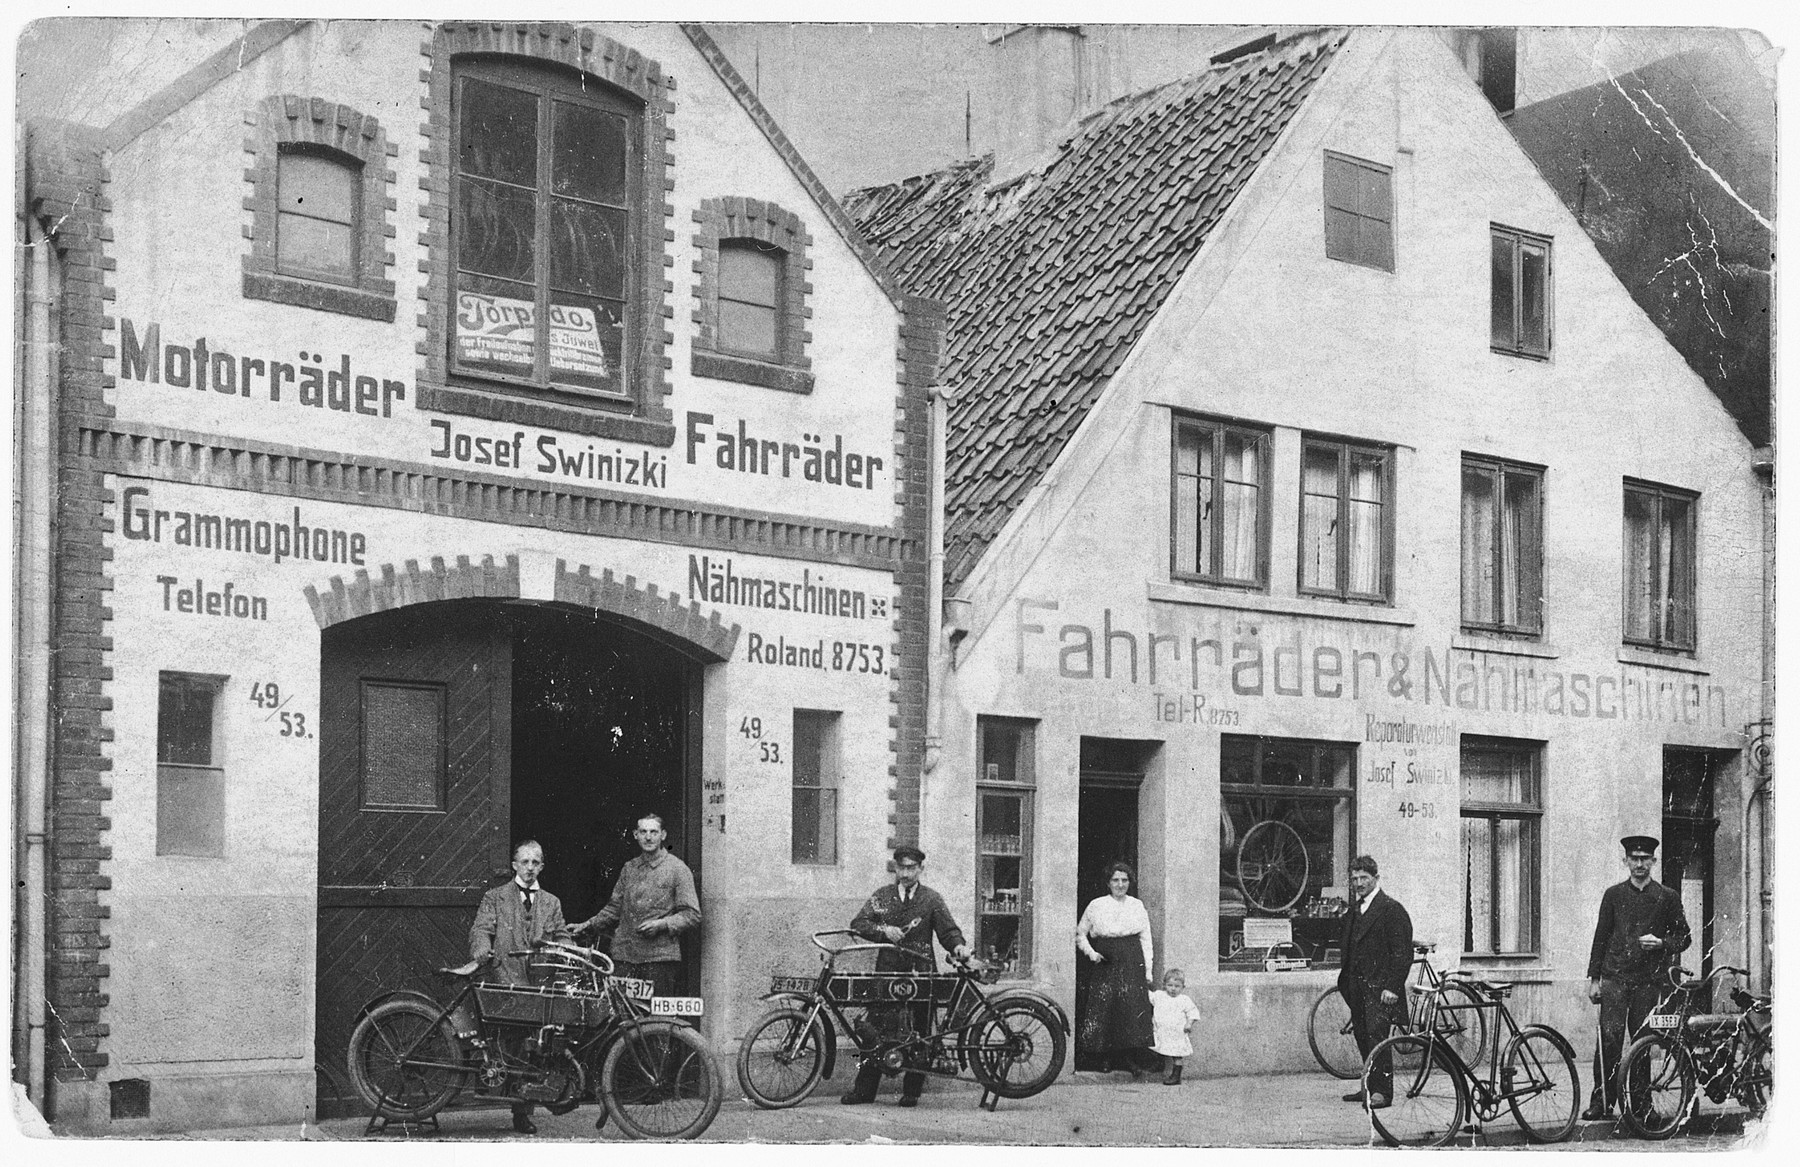 Josef Zwienicki stands in front of his bicycle shop amid several customers.